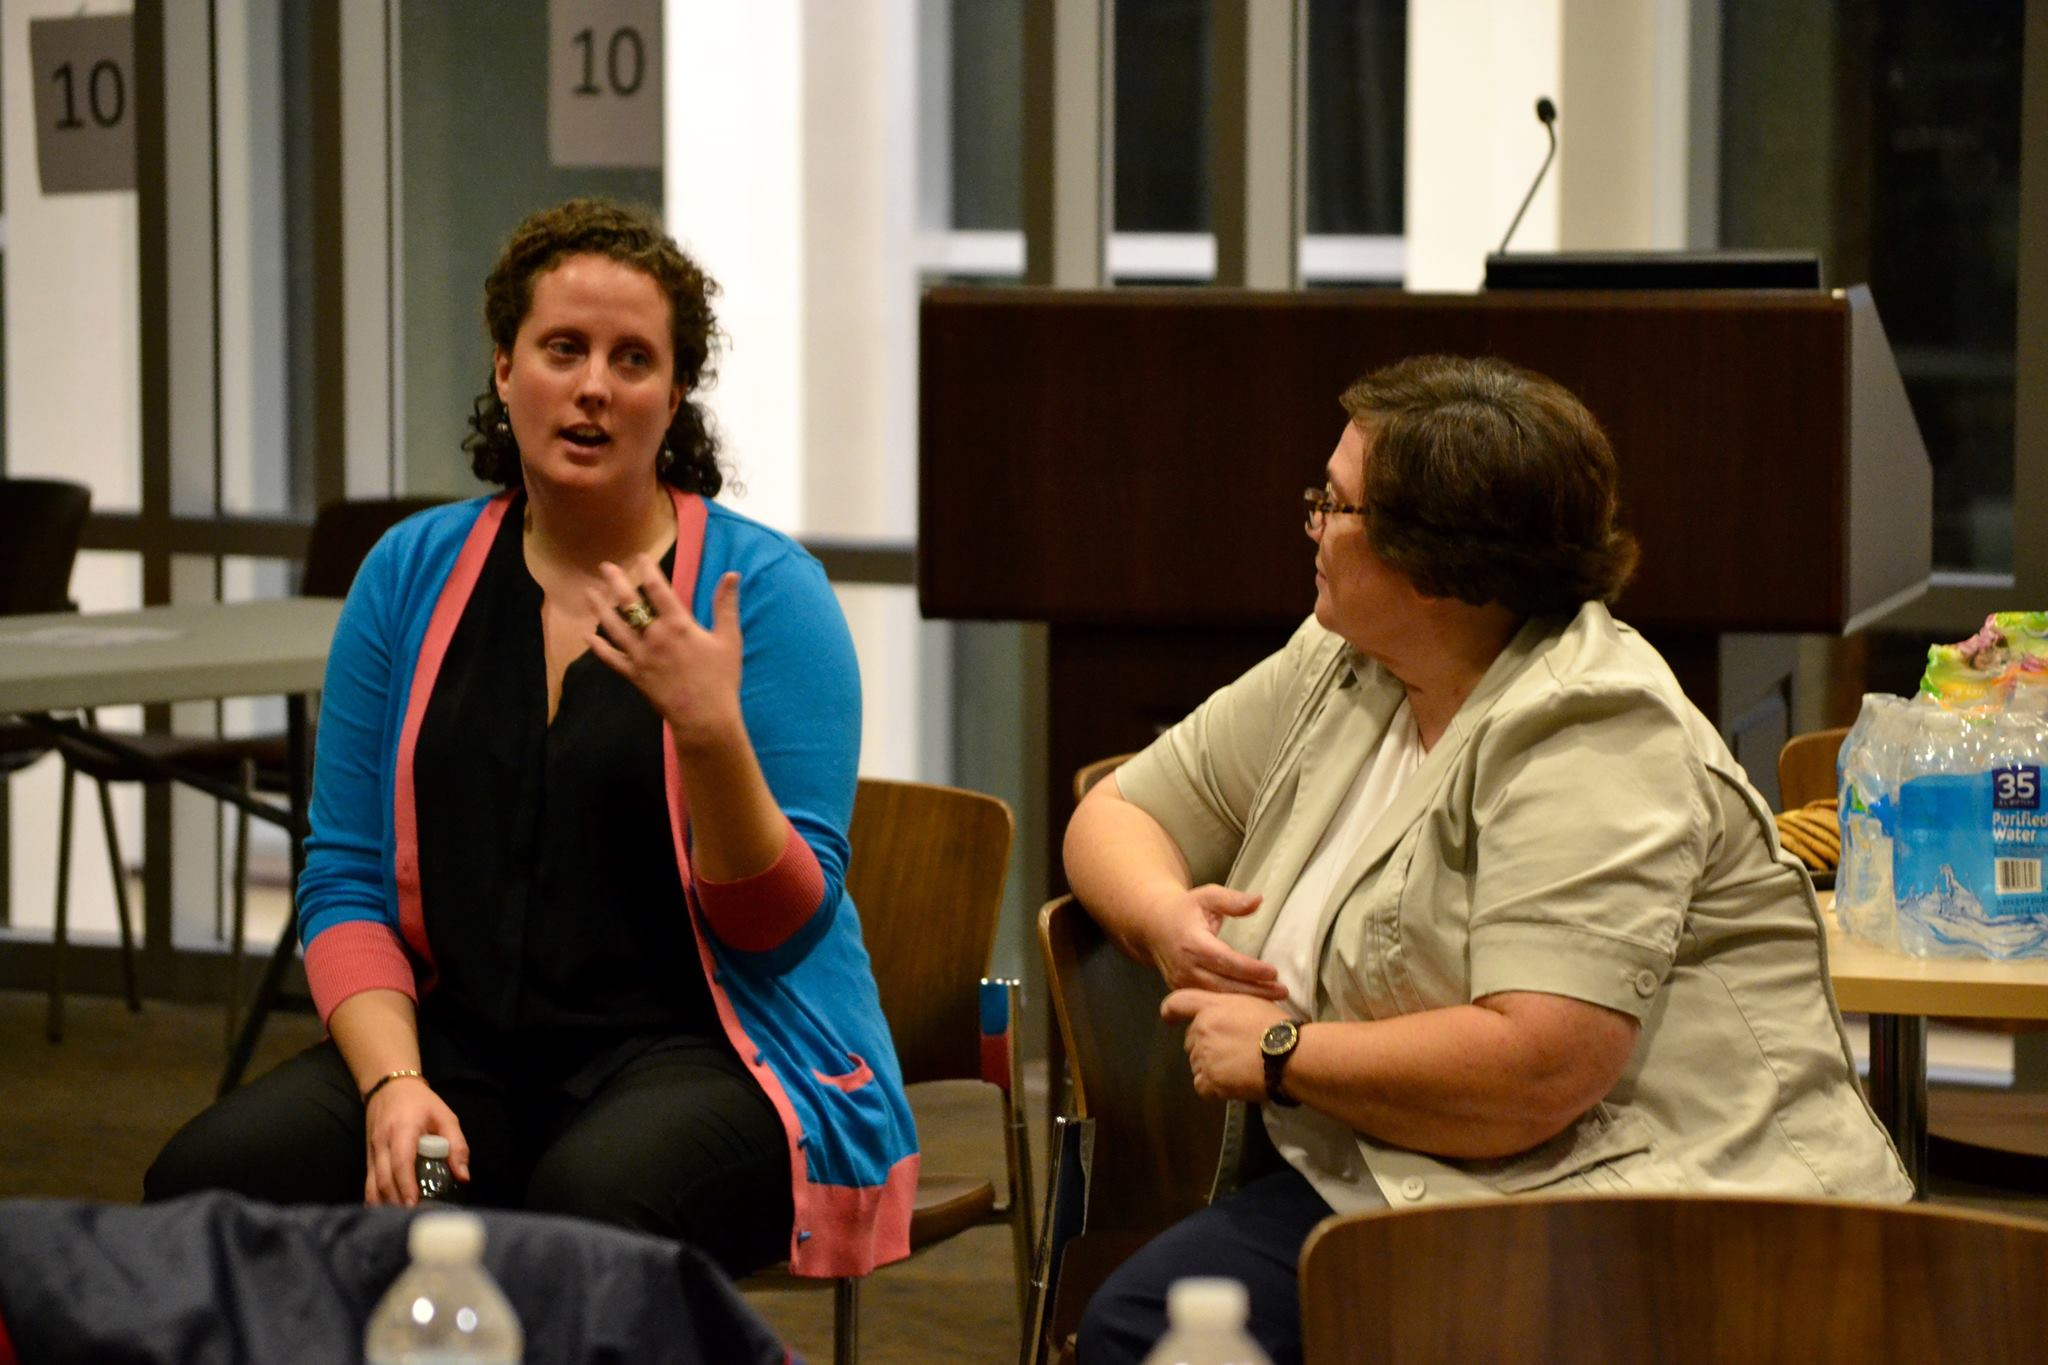 Arranger Kimberly Witt and Patricia Weldon discussed issues of diversity and discrimination.